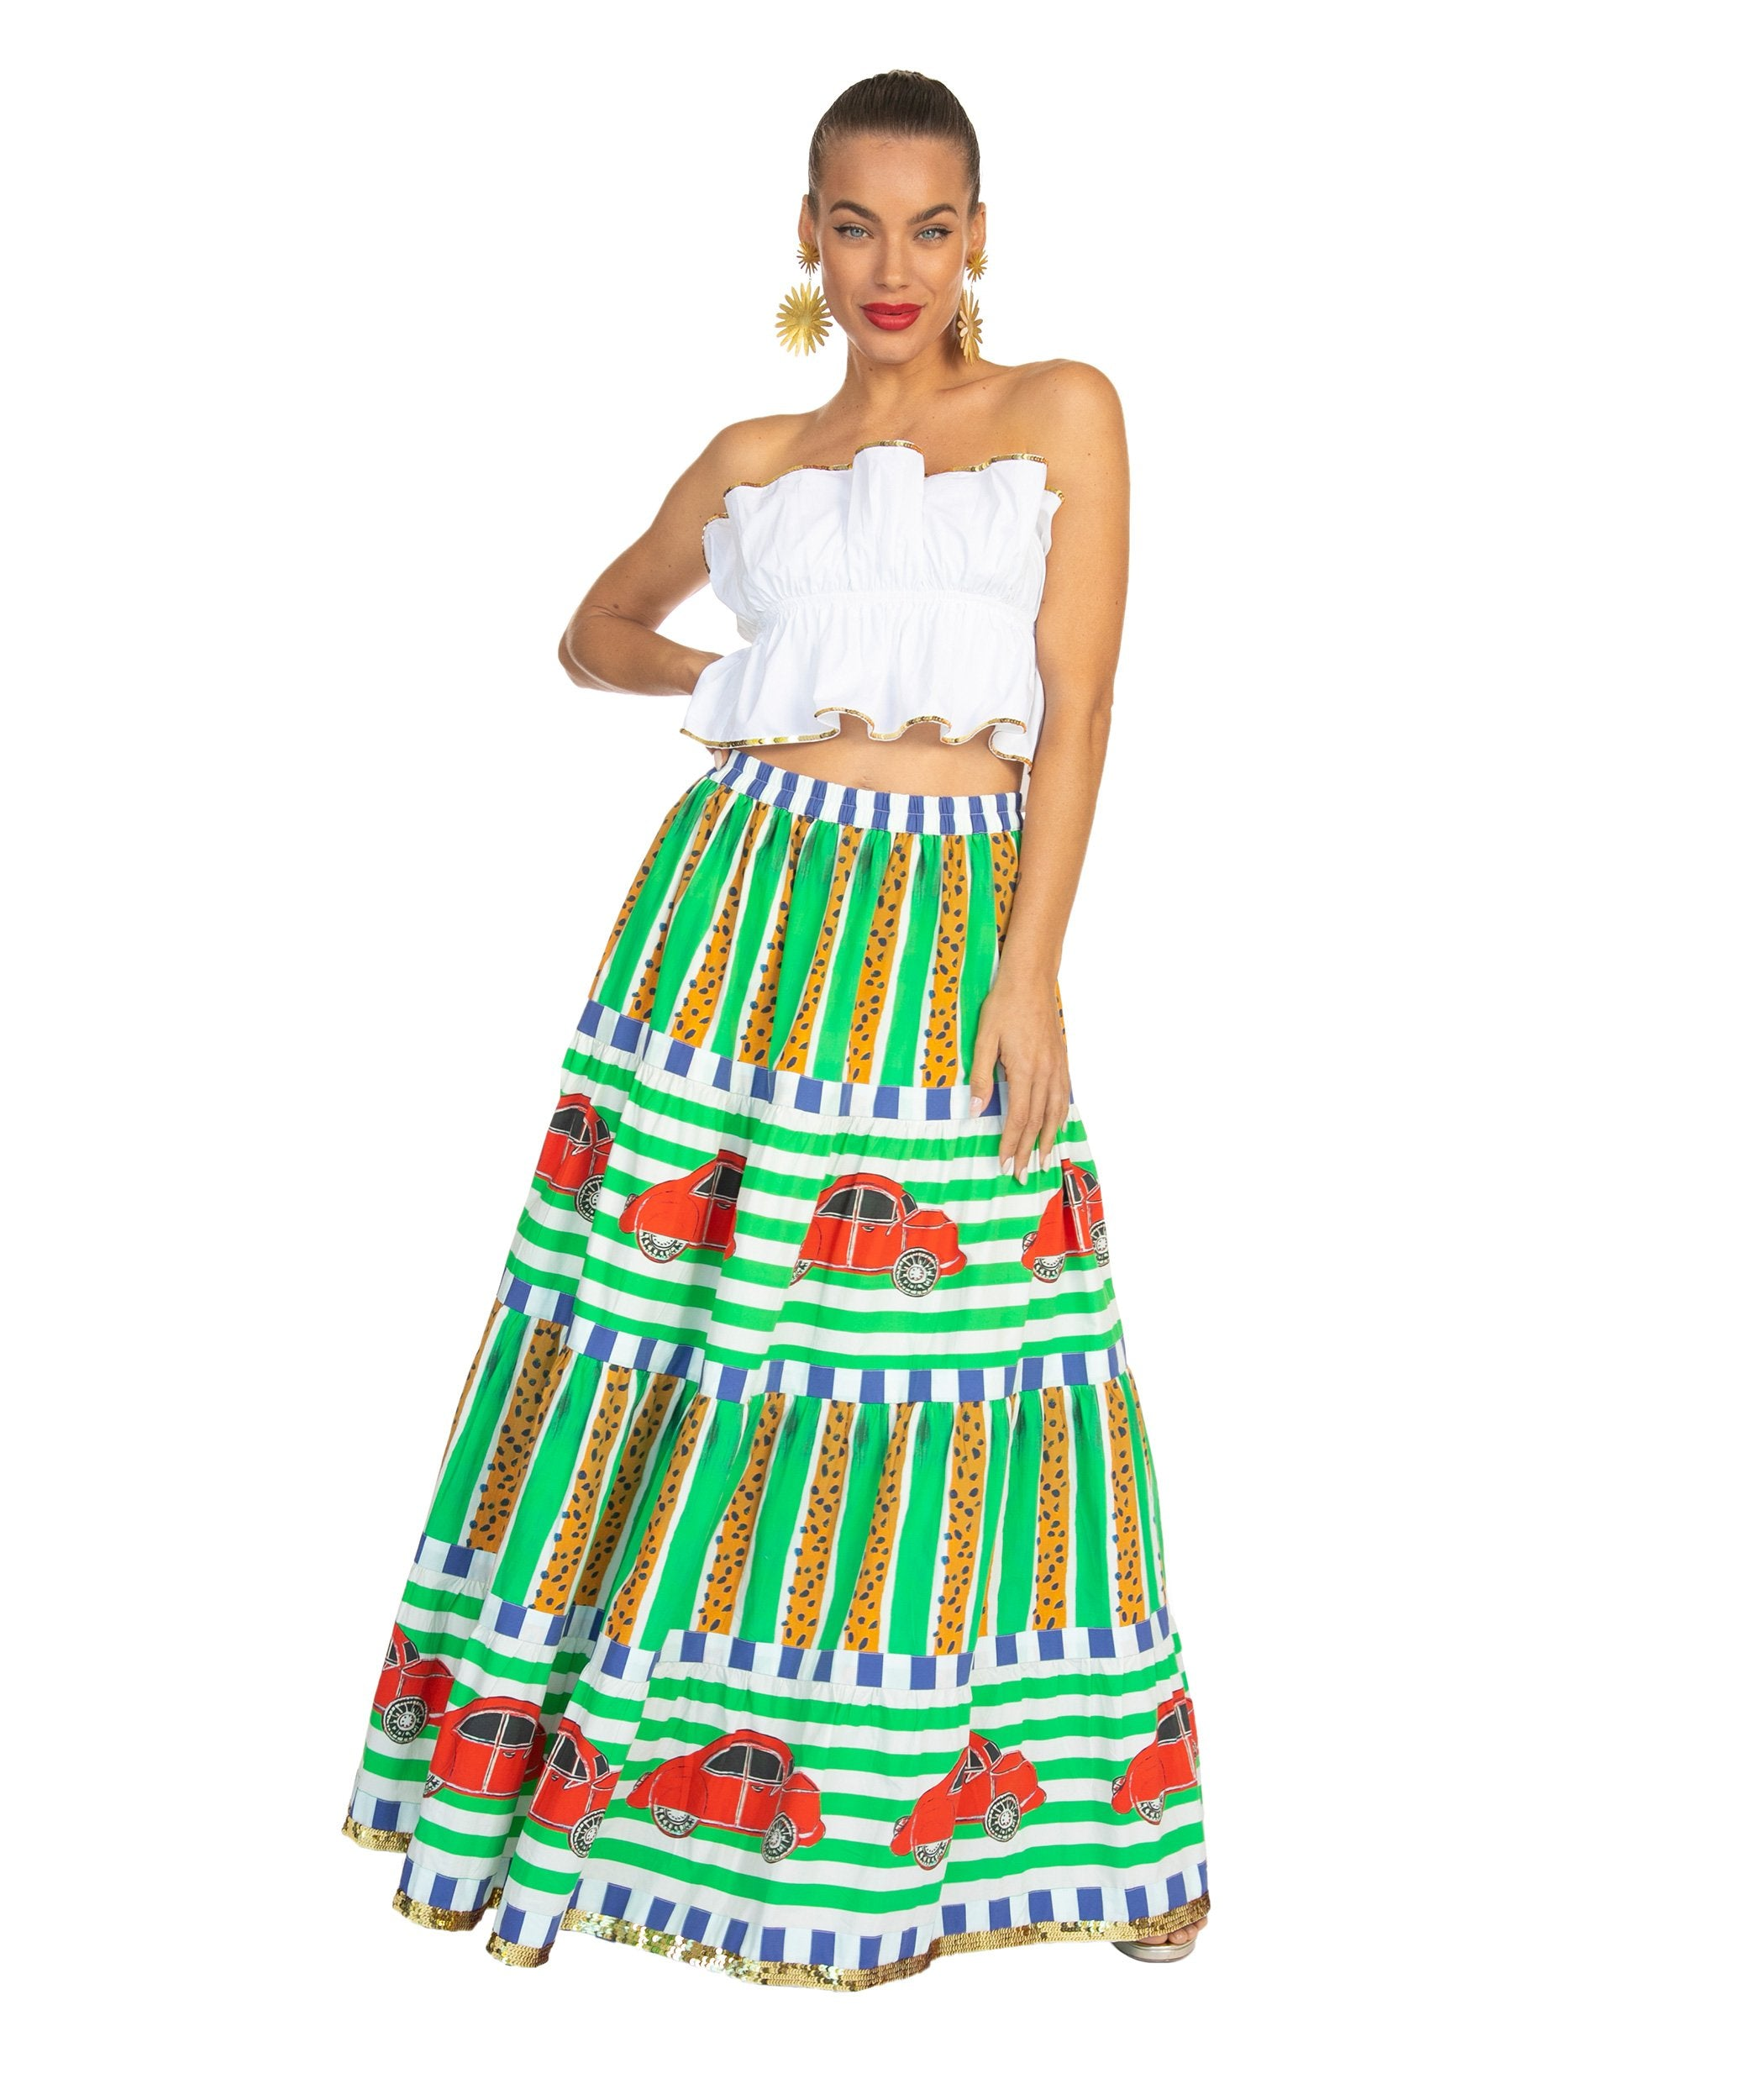 The Vacanze Skirt by Bonita Collective